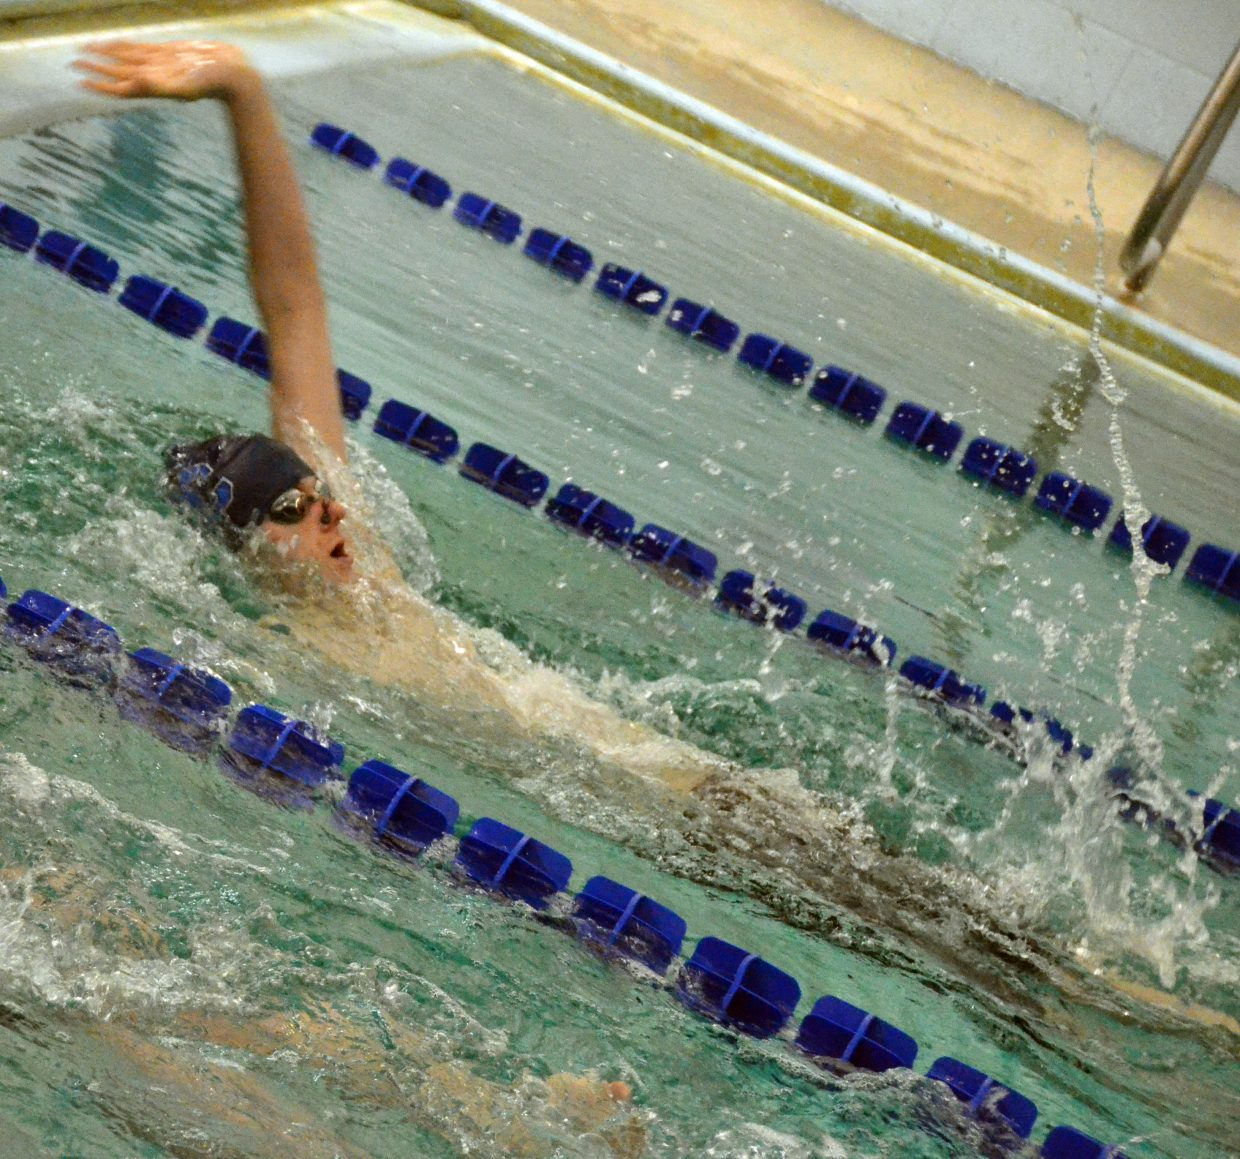 Moffat County High School swimmer Cody Evaristo has only a few feet to go in the 100-meter backstroke relay during MCHS's Friday meet.